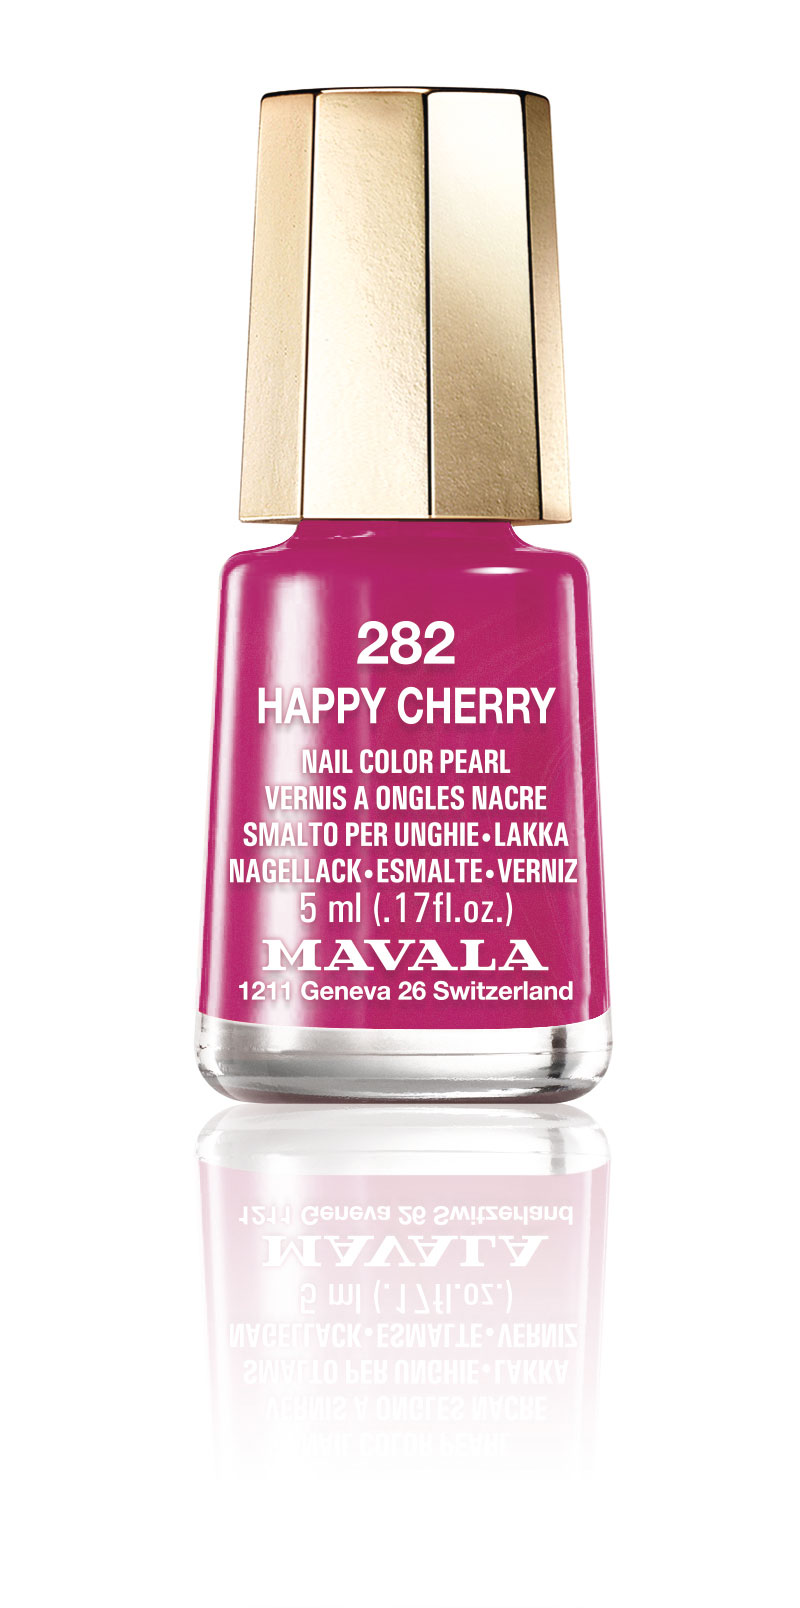 282 HAPPY CHERRY